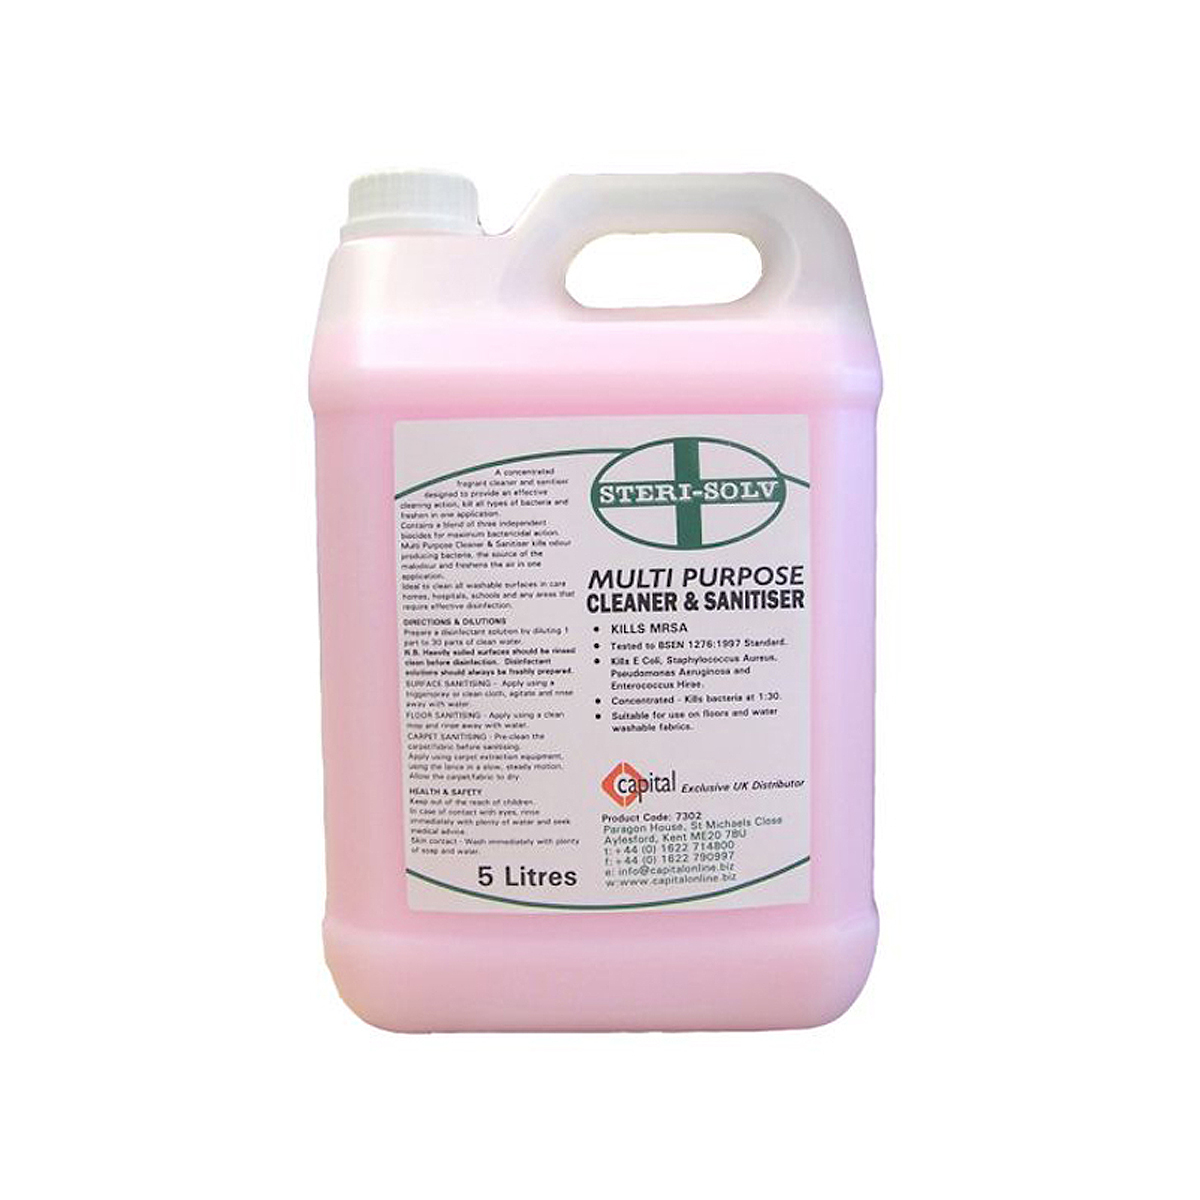 5 Litre Steri-solv Multi Purpose Cleaner and Sanitiser